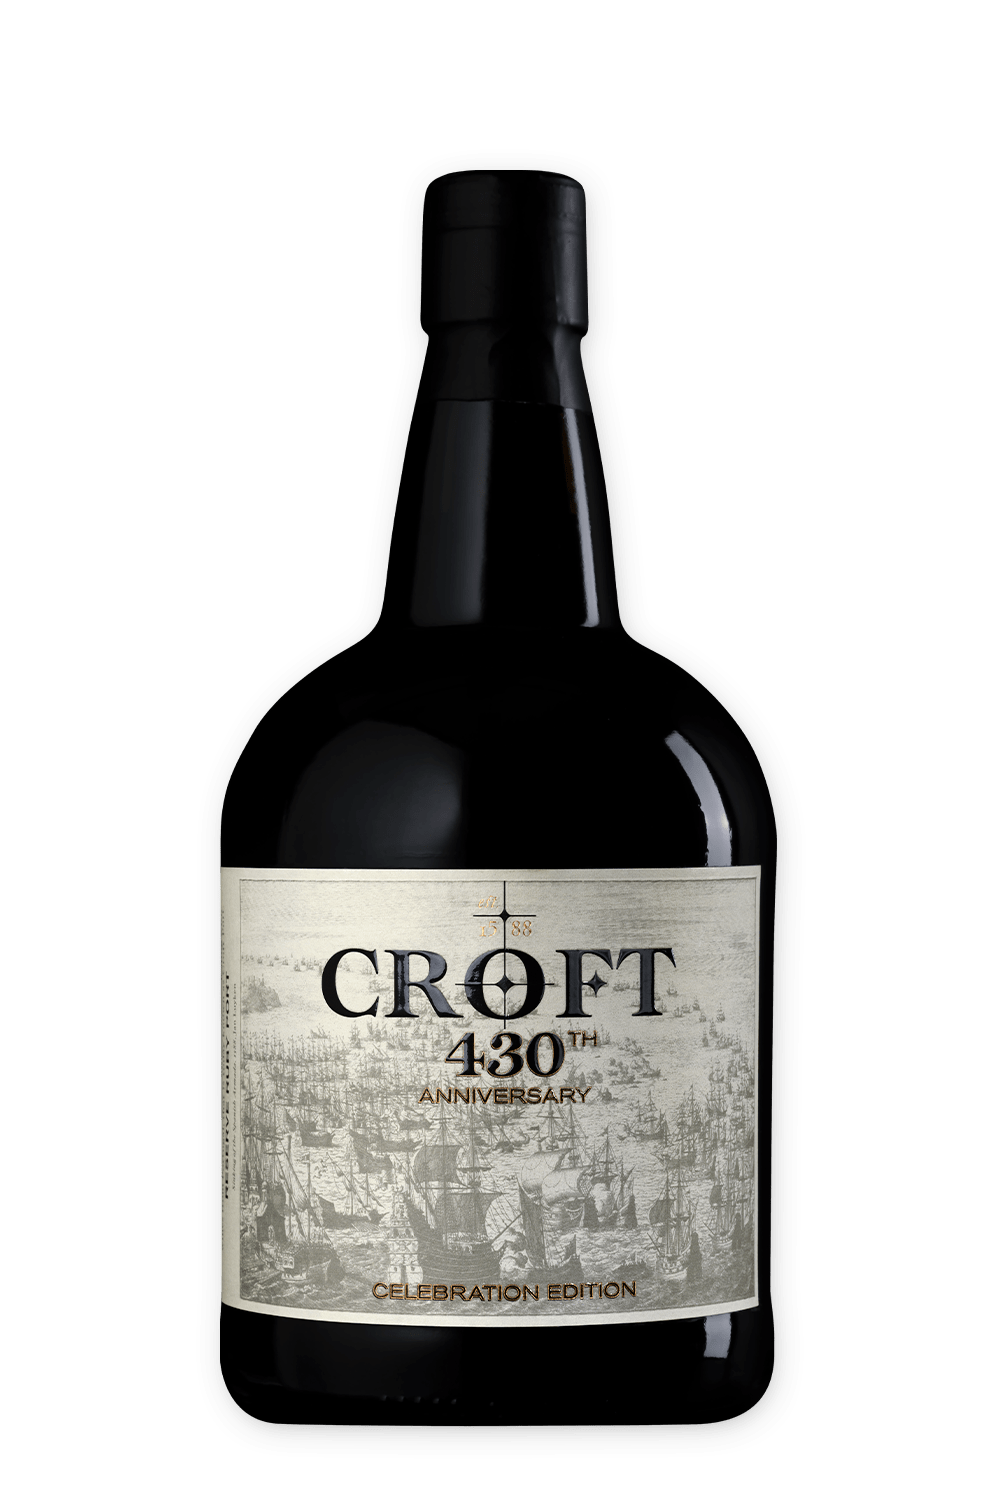 Croft-Porto-Ruby-Reserve-430Th-Anniversary